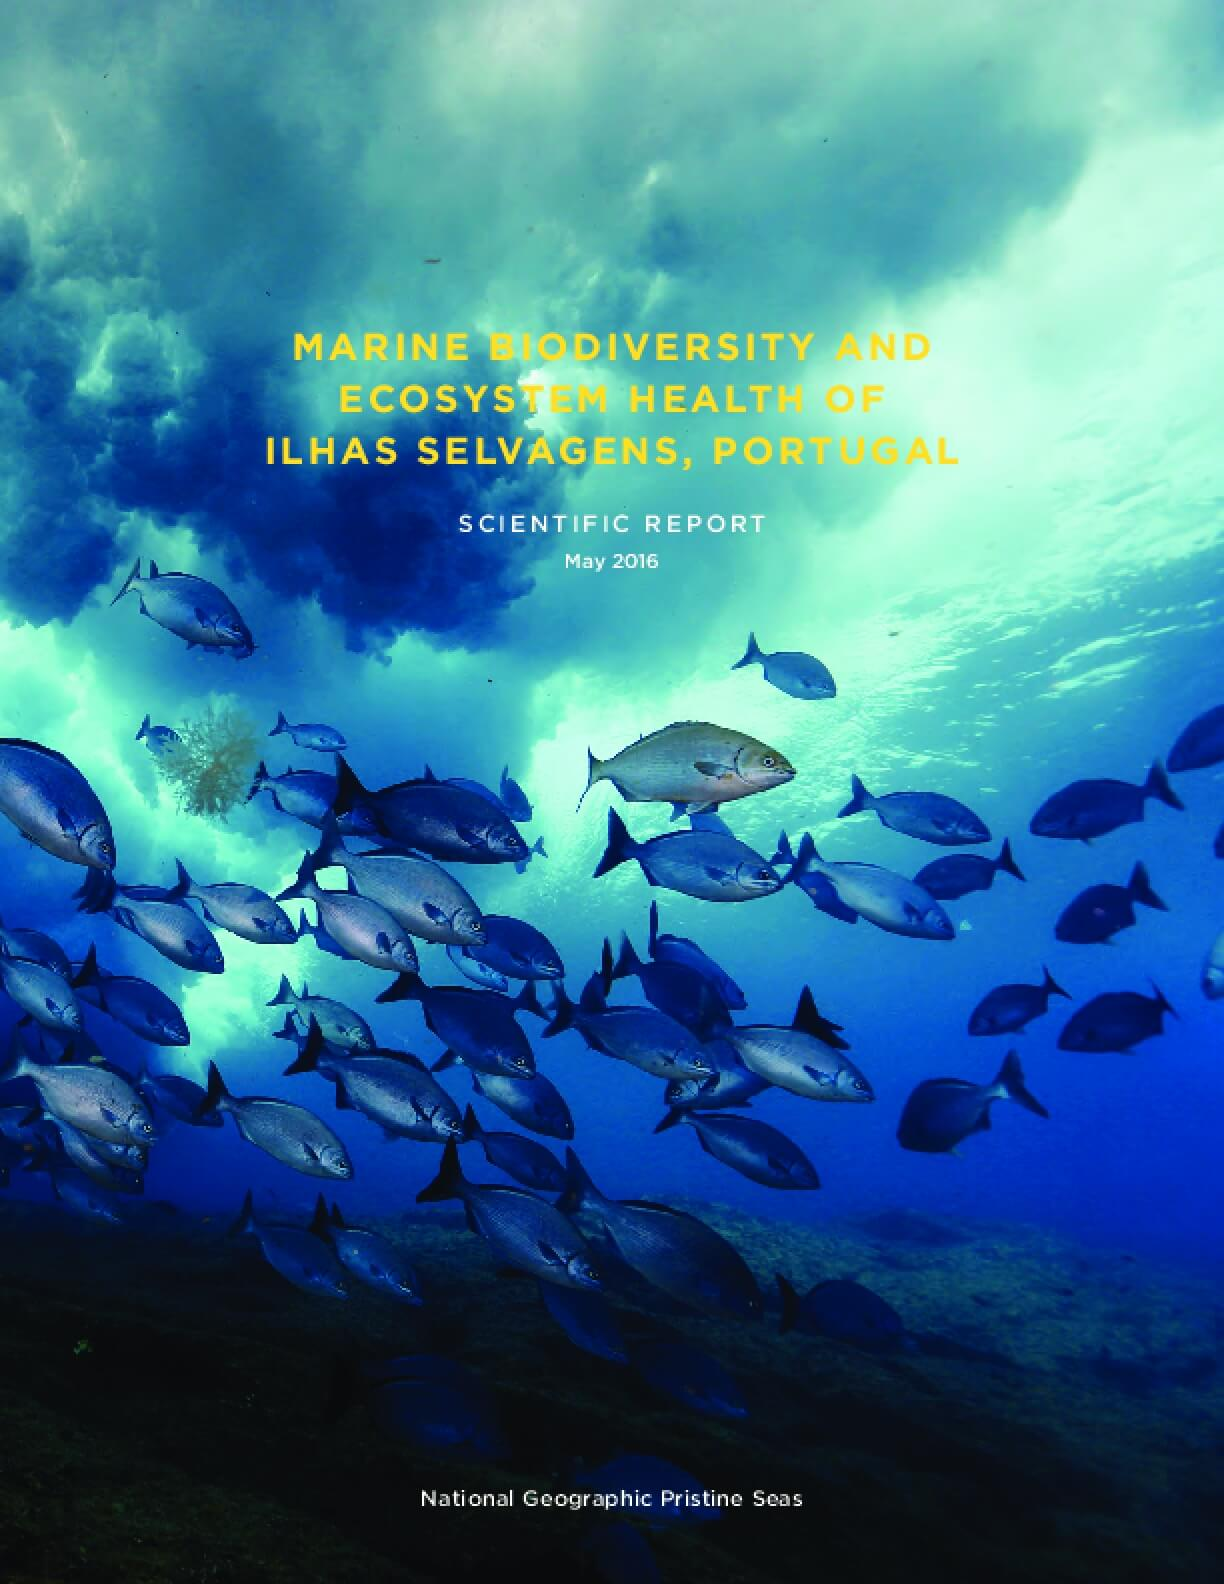 Marine Biodiversity and Ecosystem Health of Ilhas Selvagens, Portugal